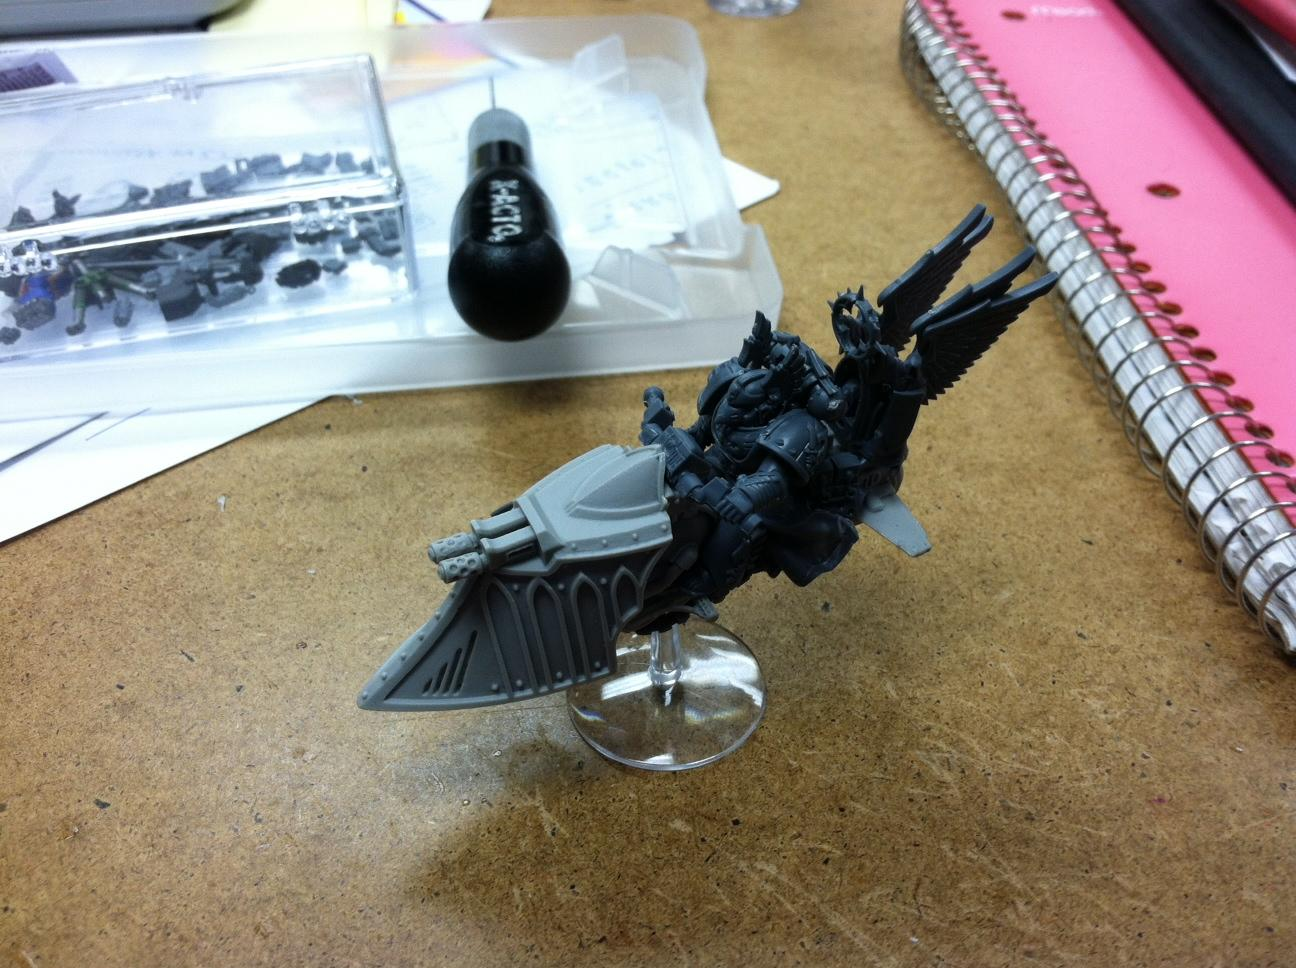 Conversion, Counts As, Dark Angels, Gothic, Jetbike, Maxmini, Sammael